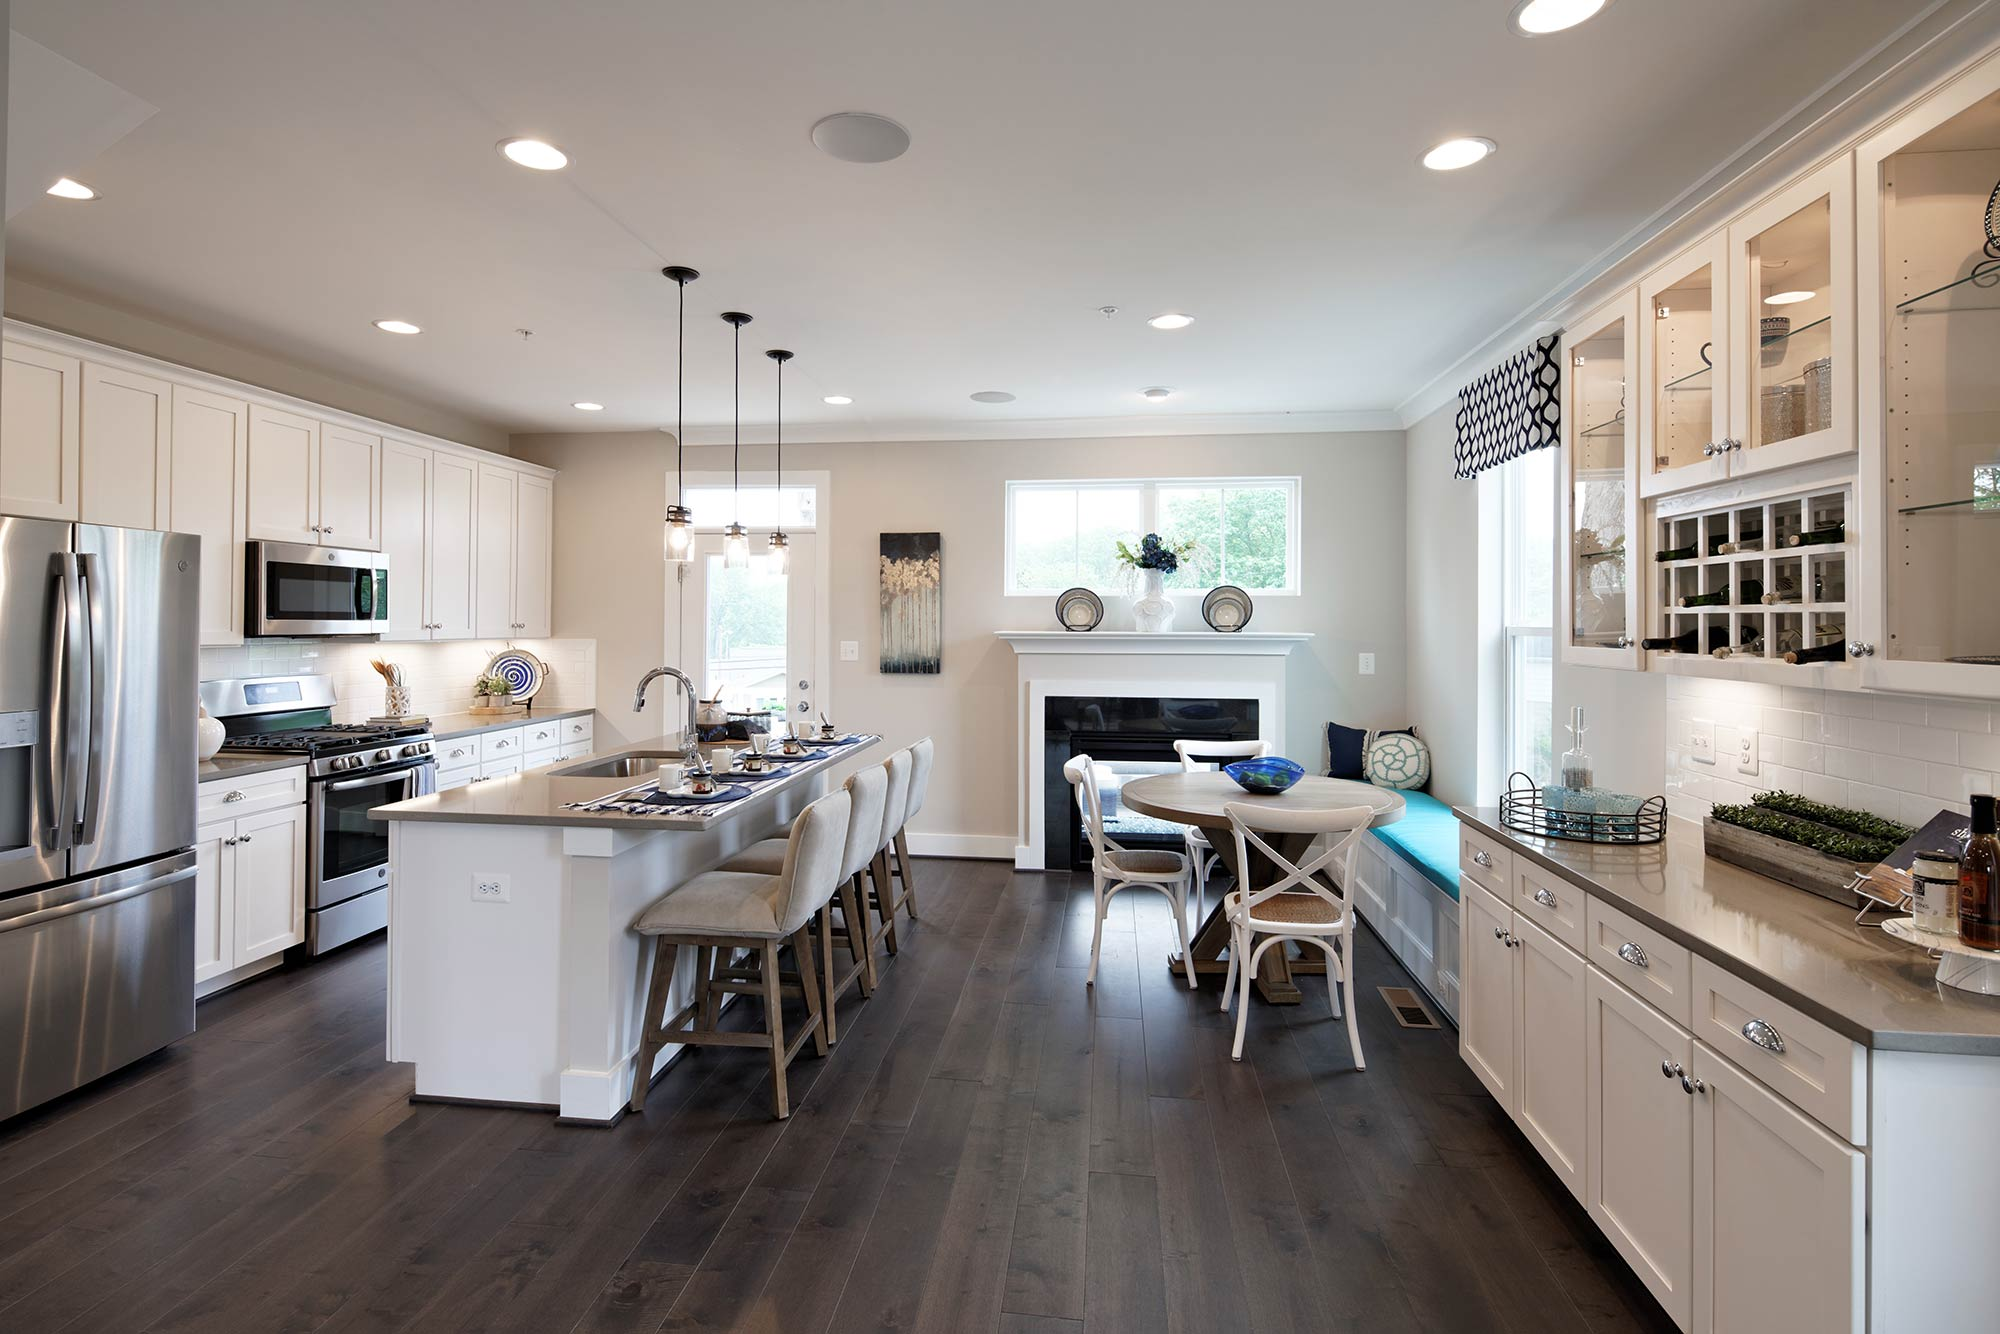 The Annapolis Floor Plan, Up to 4 Levels, 2-Car Garage, 3-4 BR, Townhomes in Annapolis MD, Craftmark Homes